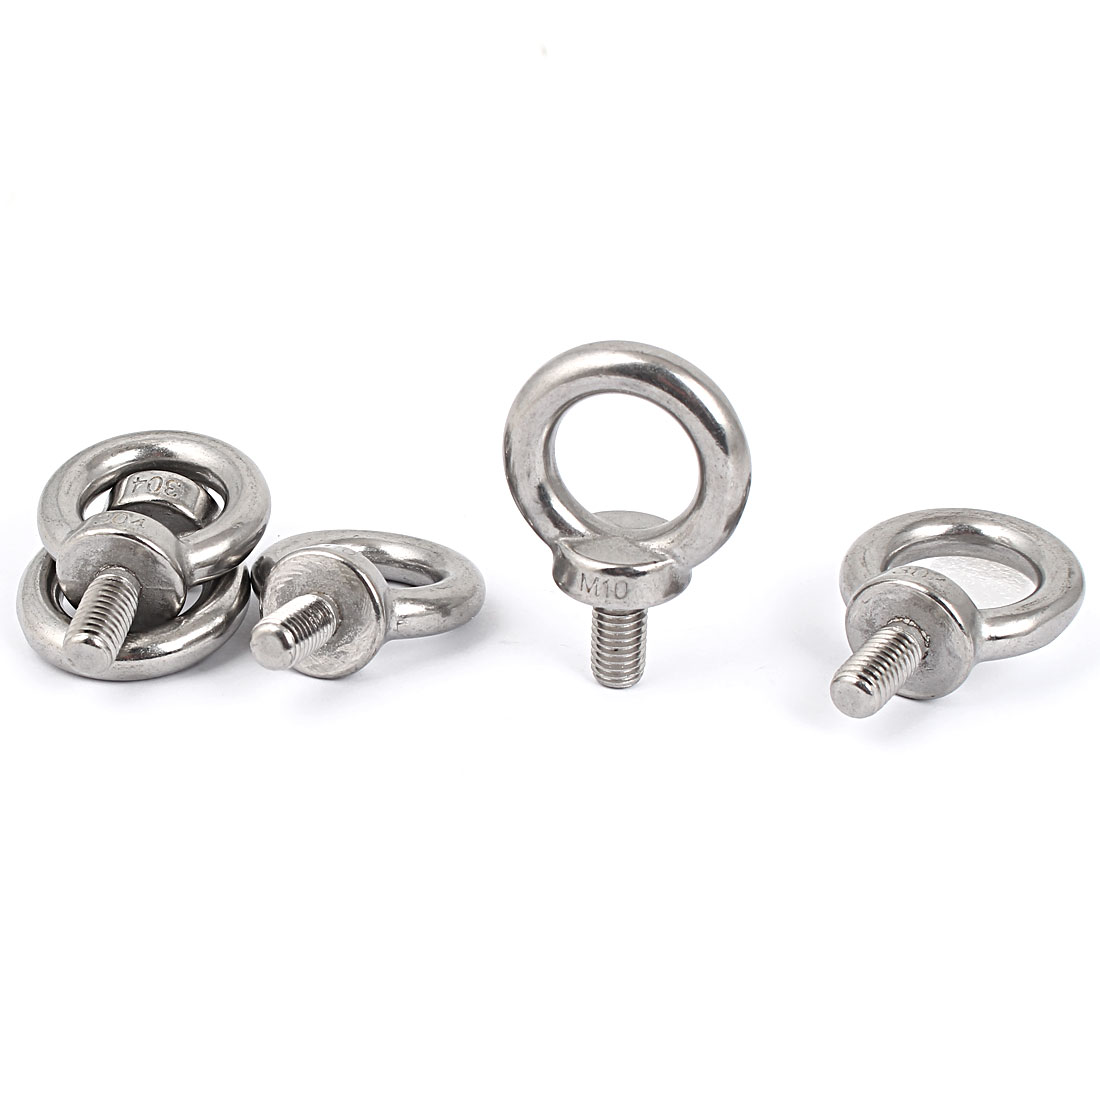 304 Stainless Steel Machinery Shoulder Lifting Eye Bolt 5 Pcs